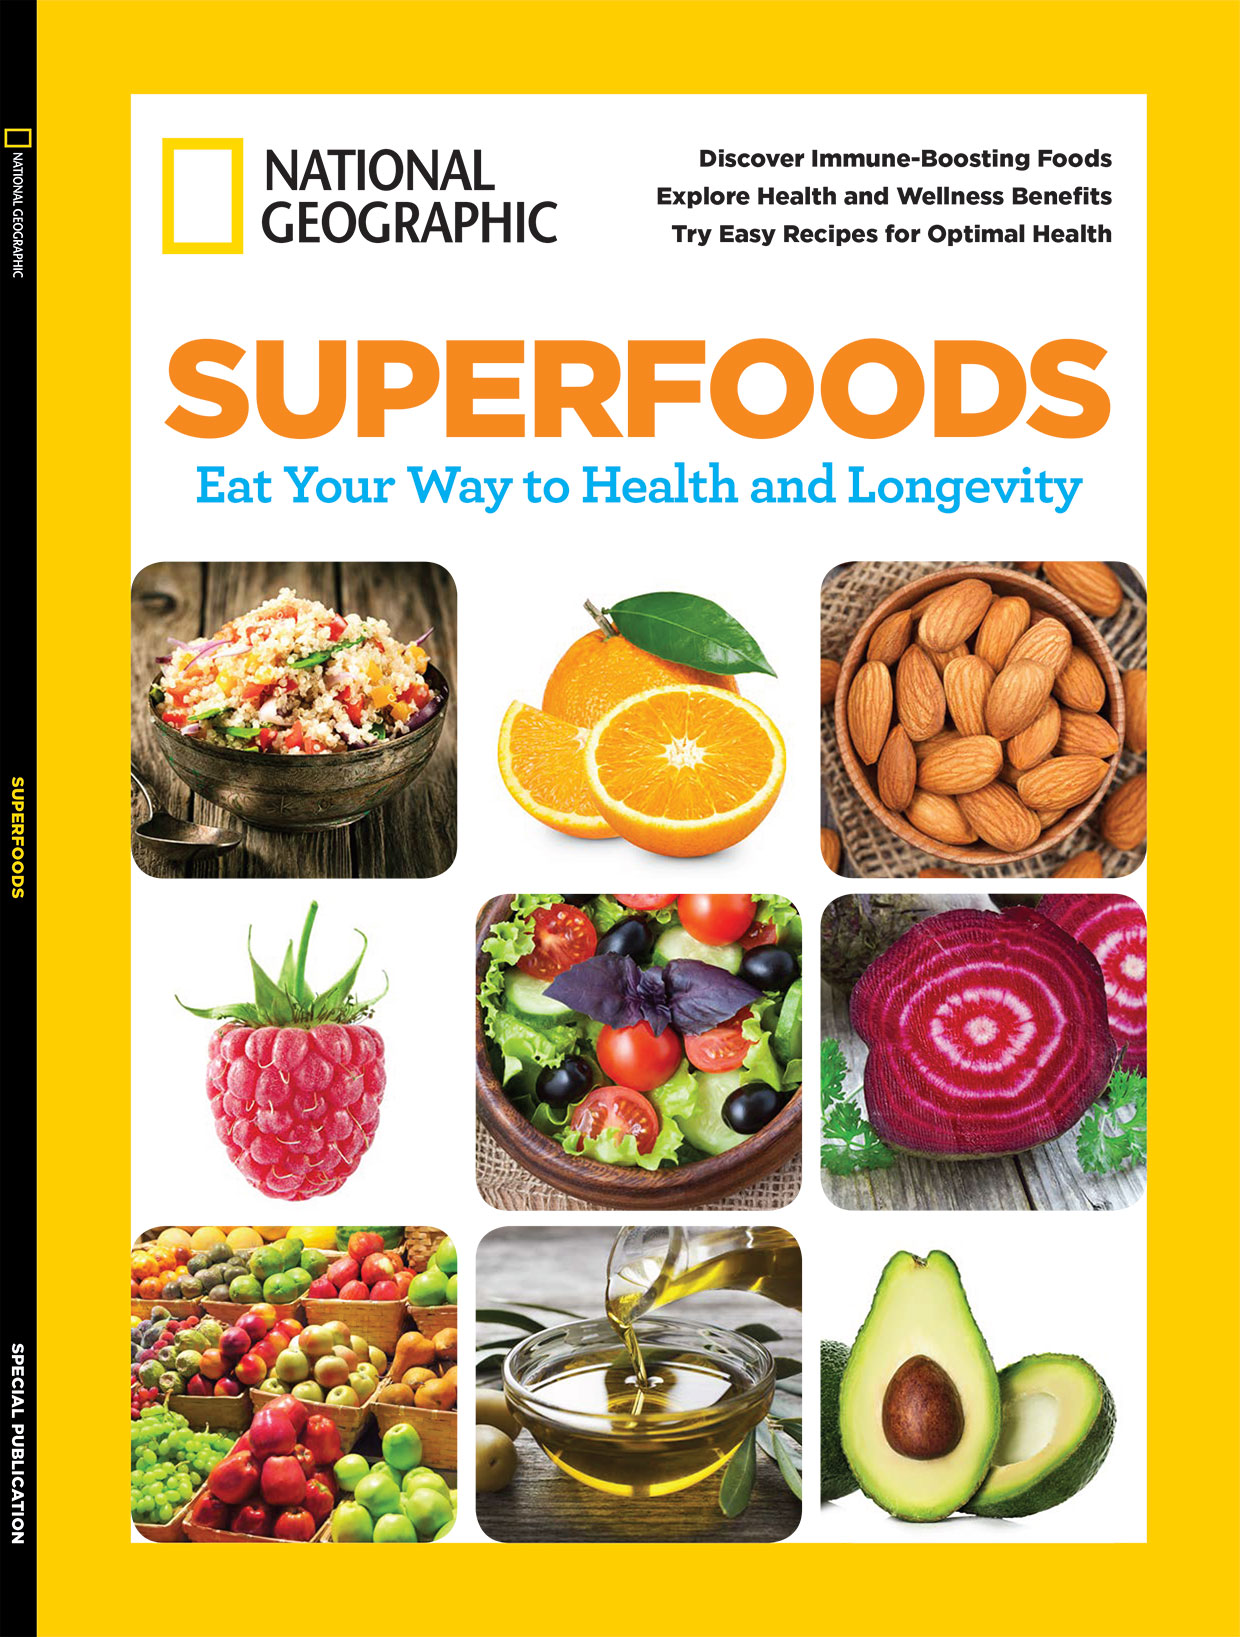 Superfoods by PK Newby